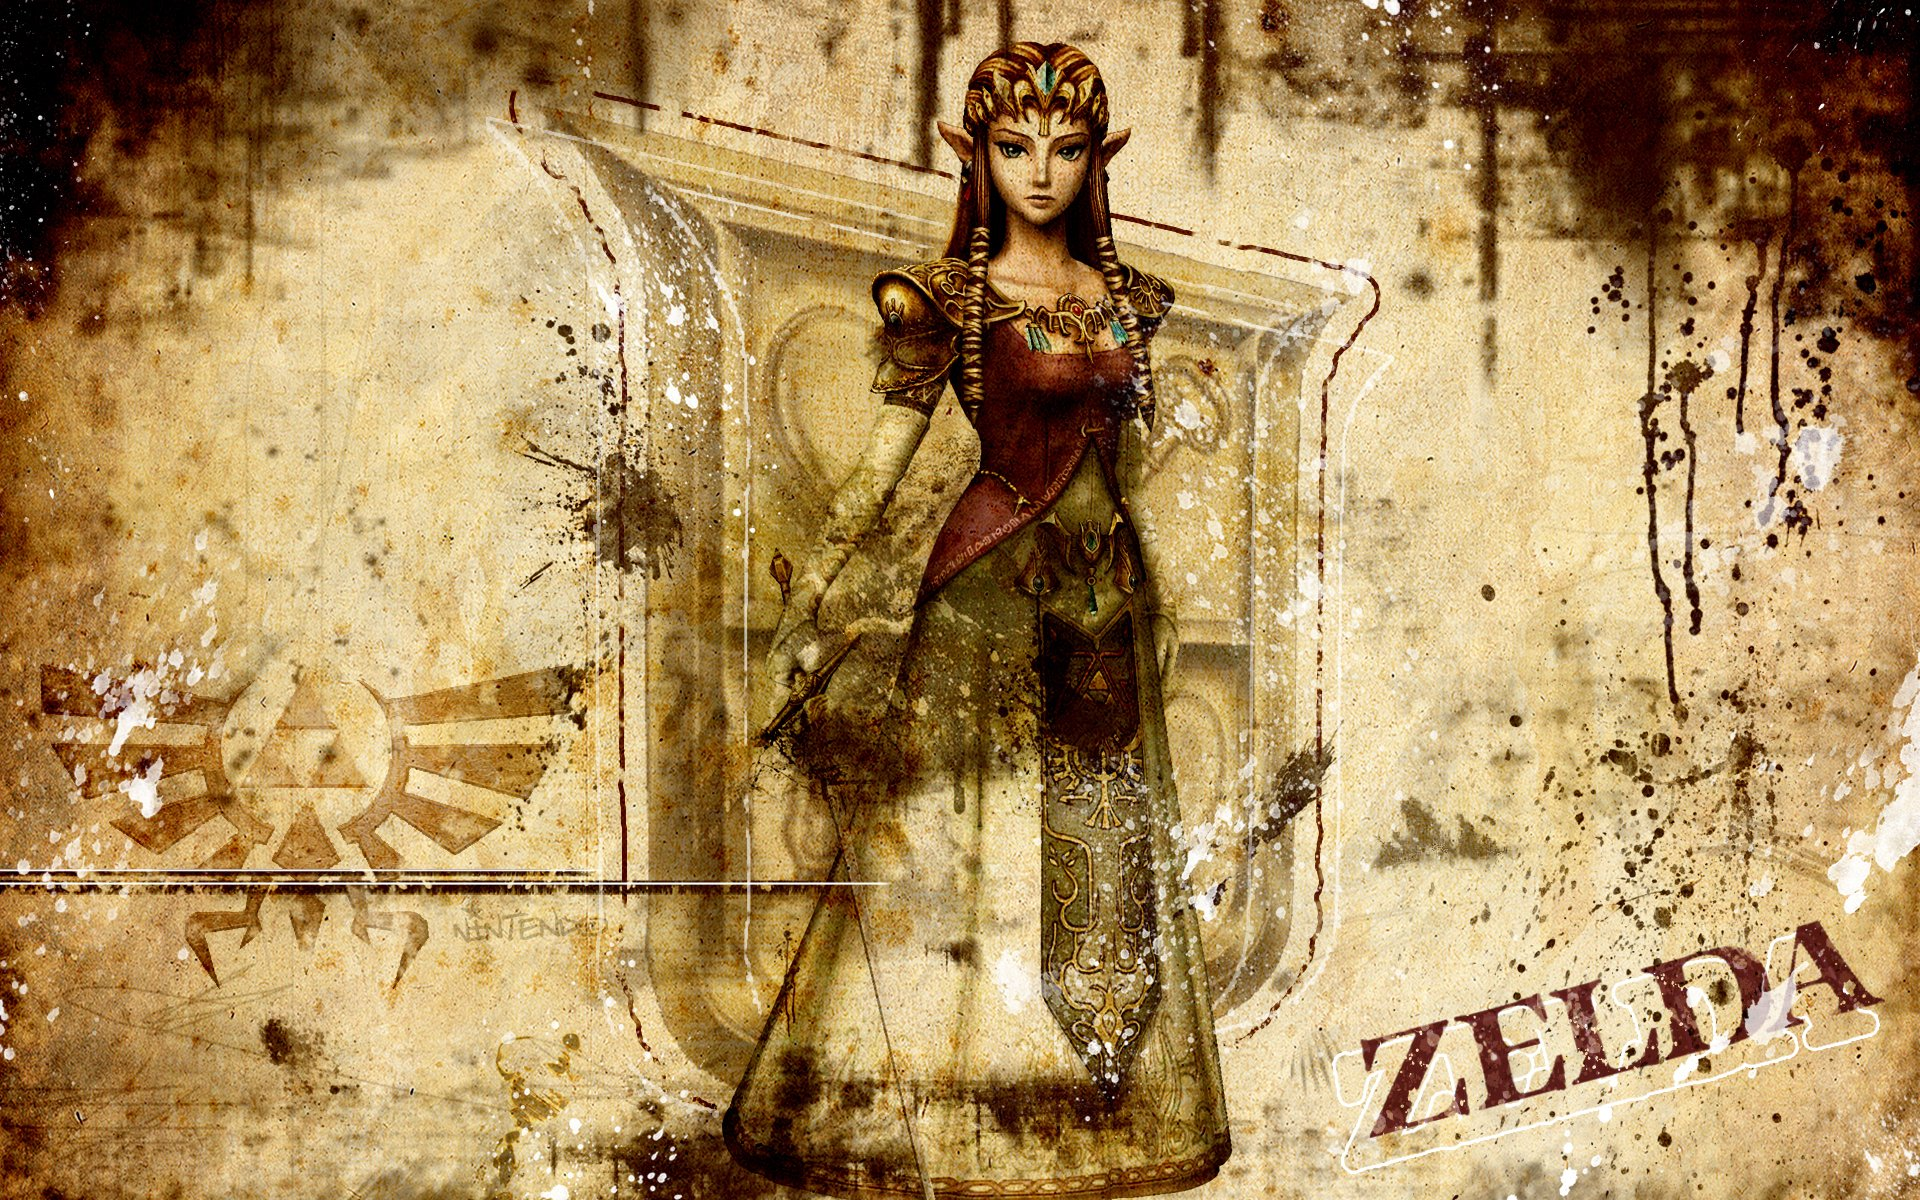 Zelda   The Legend of Zelda Wallpaper 2833164 1920x1200